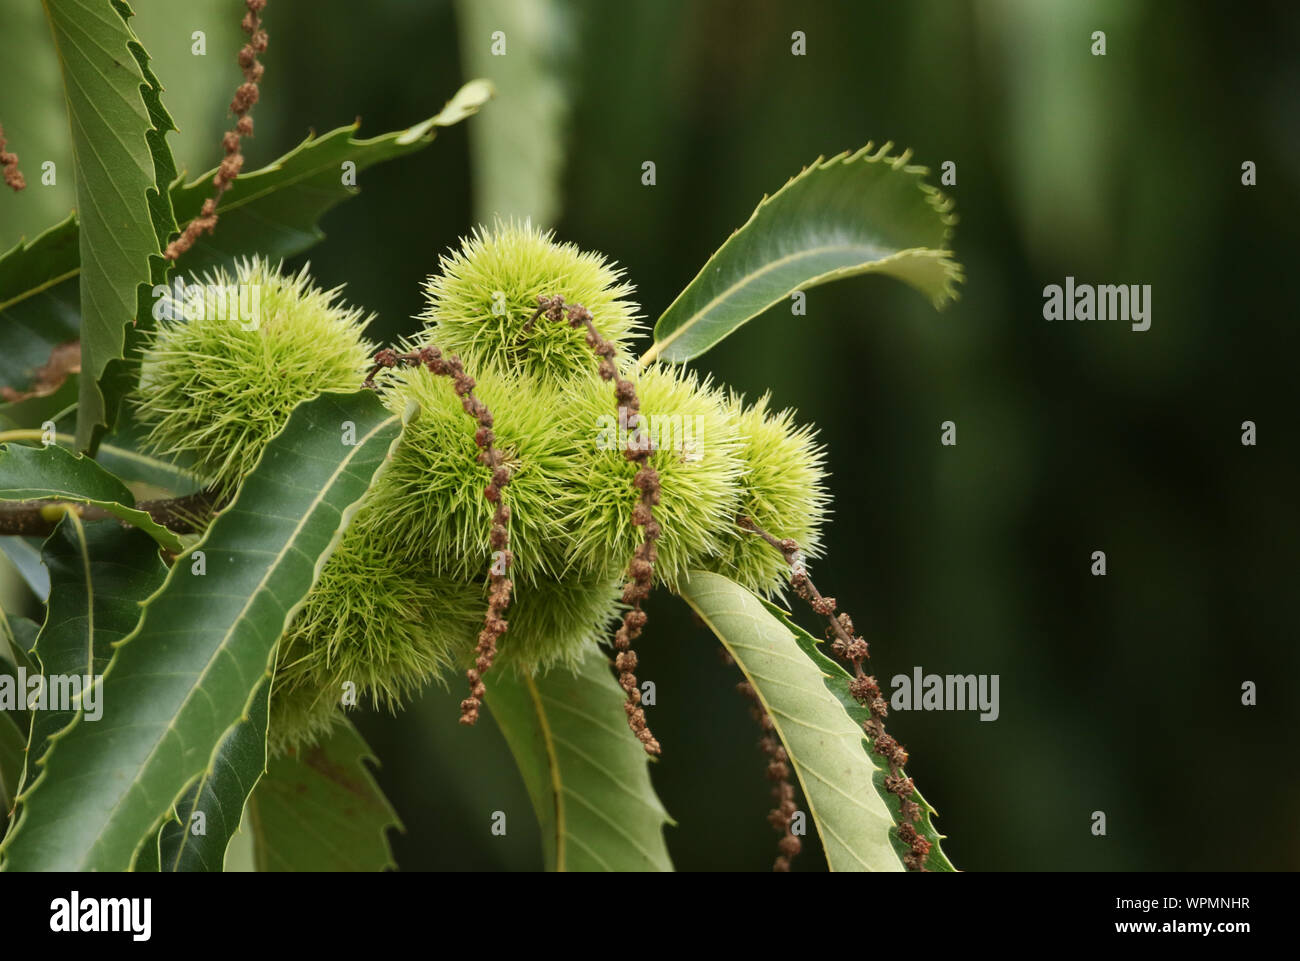 A branch of Chestnuts on a Sweet Chestnut Tree, Castanea sativa, growing in woodland in the UK. Stock Photo